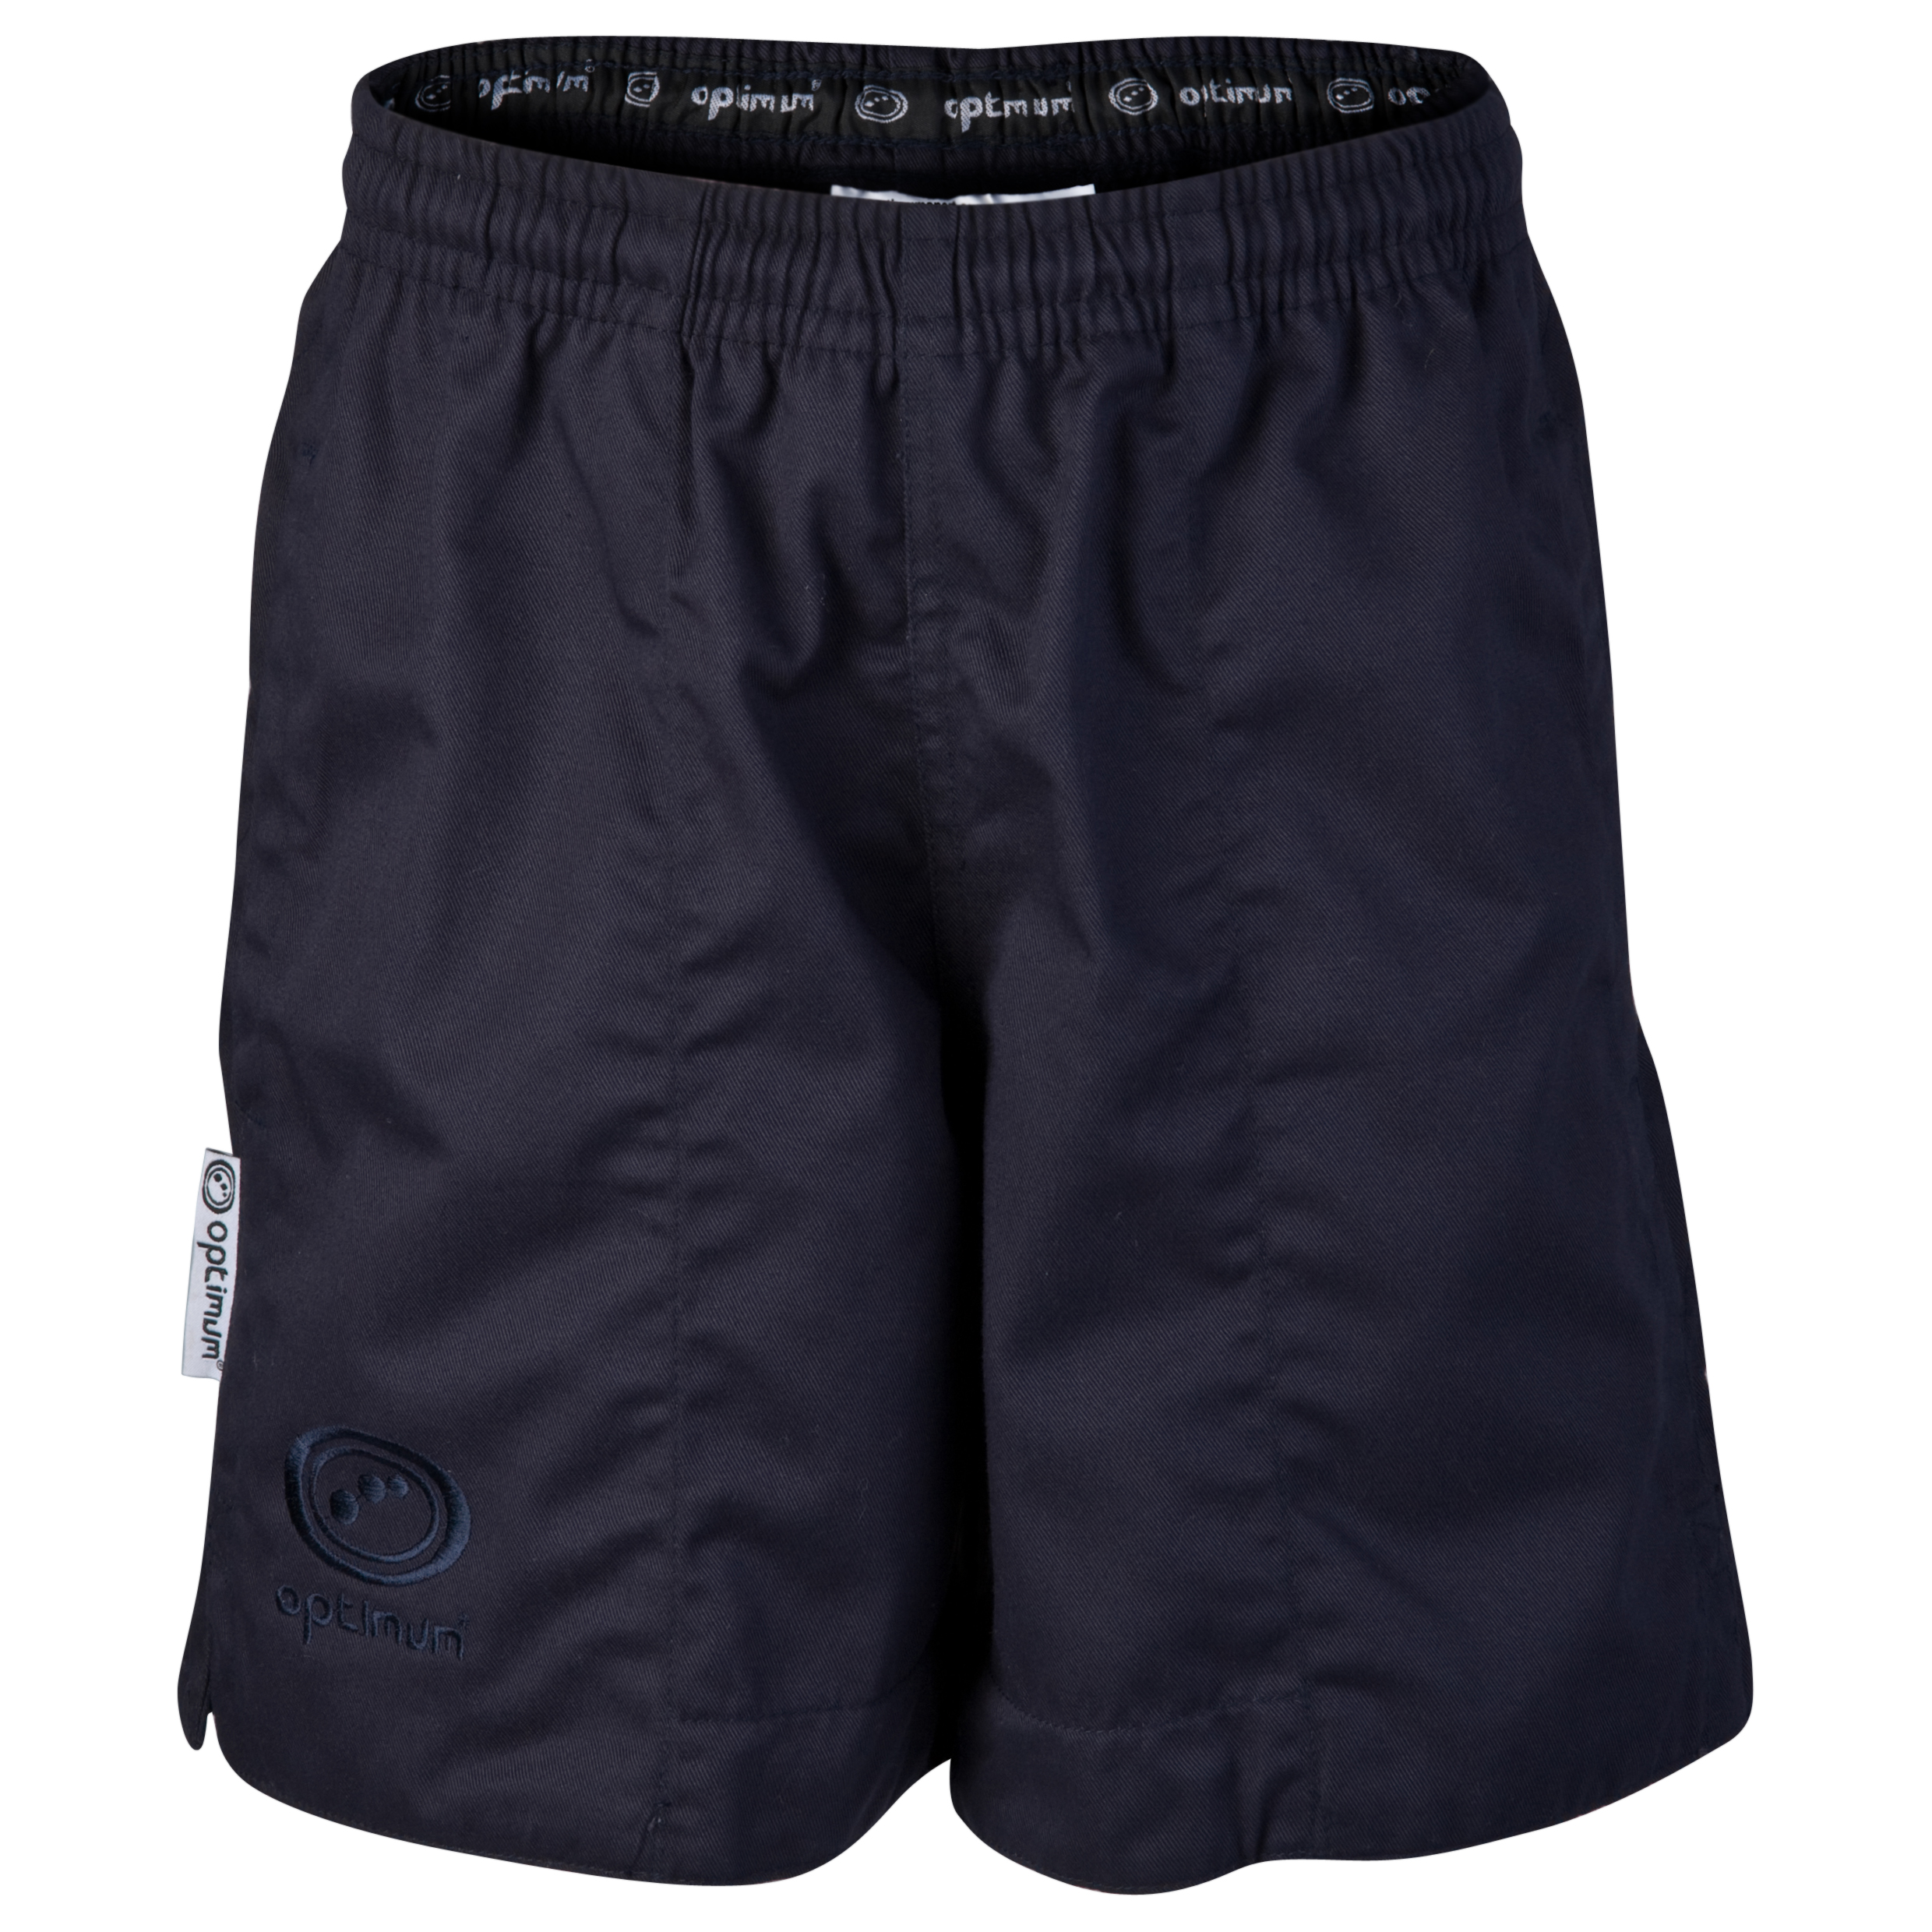 Optimum Auckland Rugby Short - Navy.